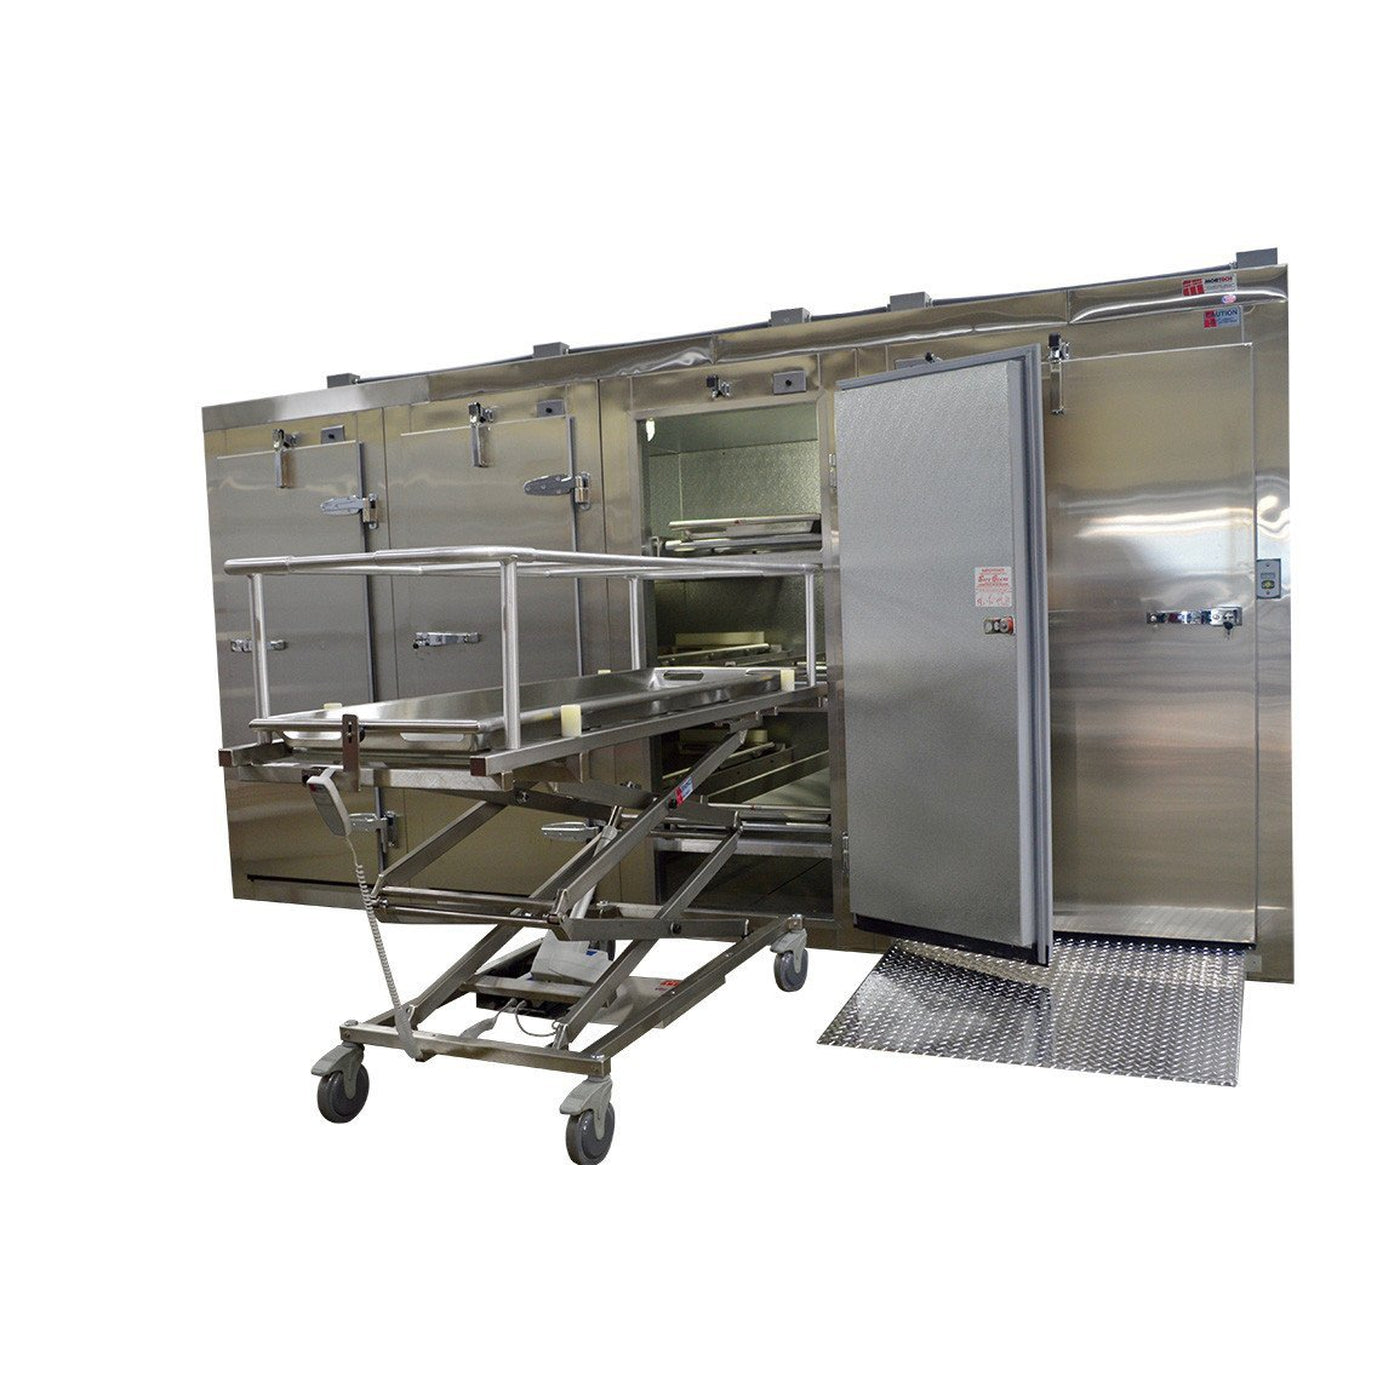 Complete Hospital Body Handling System-Body Transporter-Mortech Manufacturing Company Inc. Quality Stainless Steel Autopsy, Morgue, Funeral Home, Necropsy, Veterinary / Anatomy, Dissection Equipment and Accessories